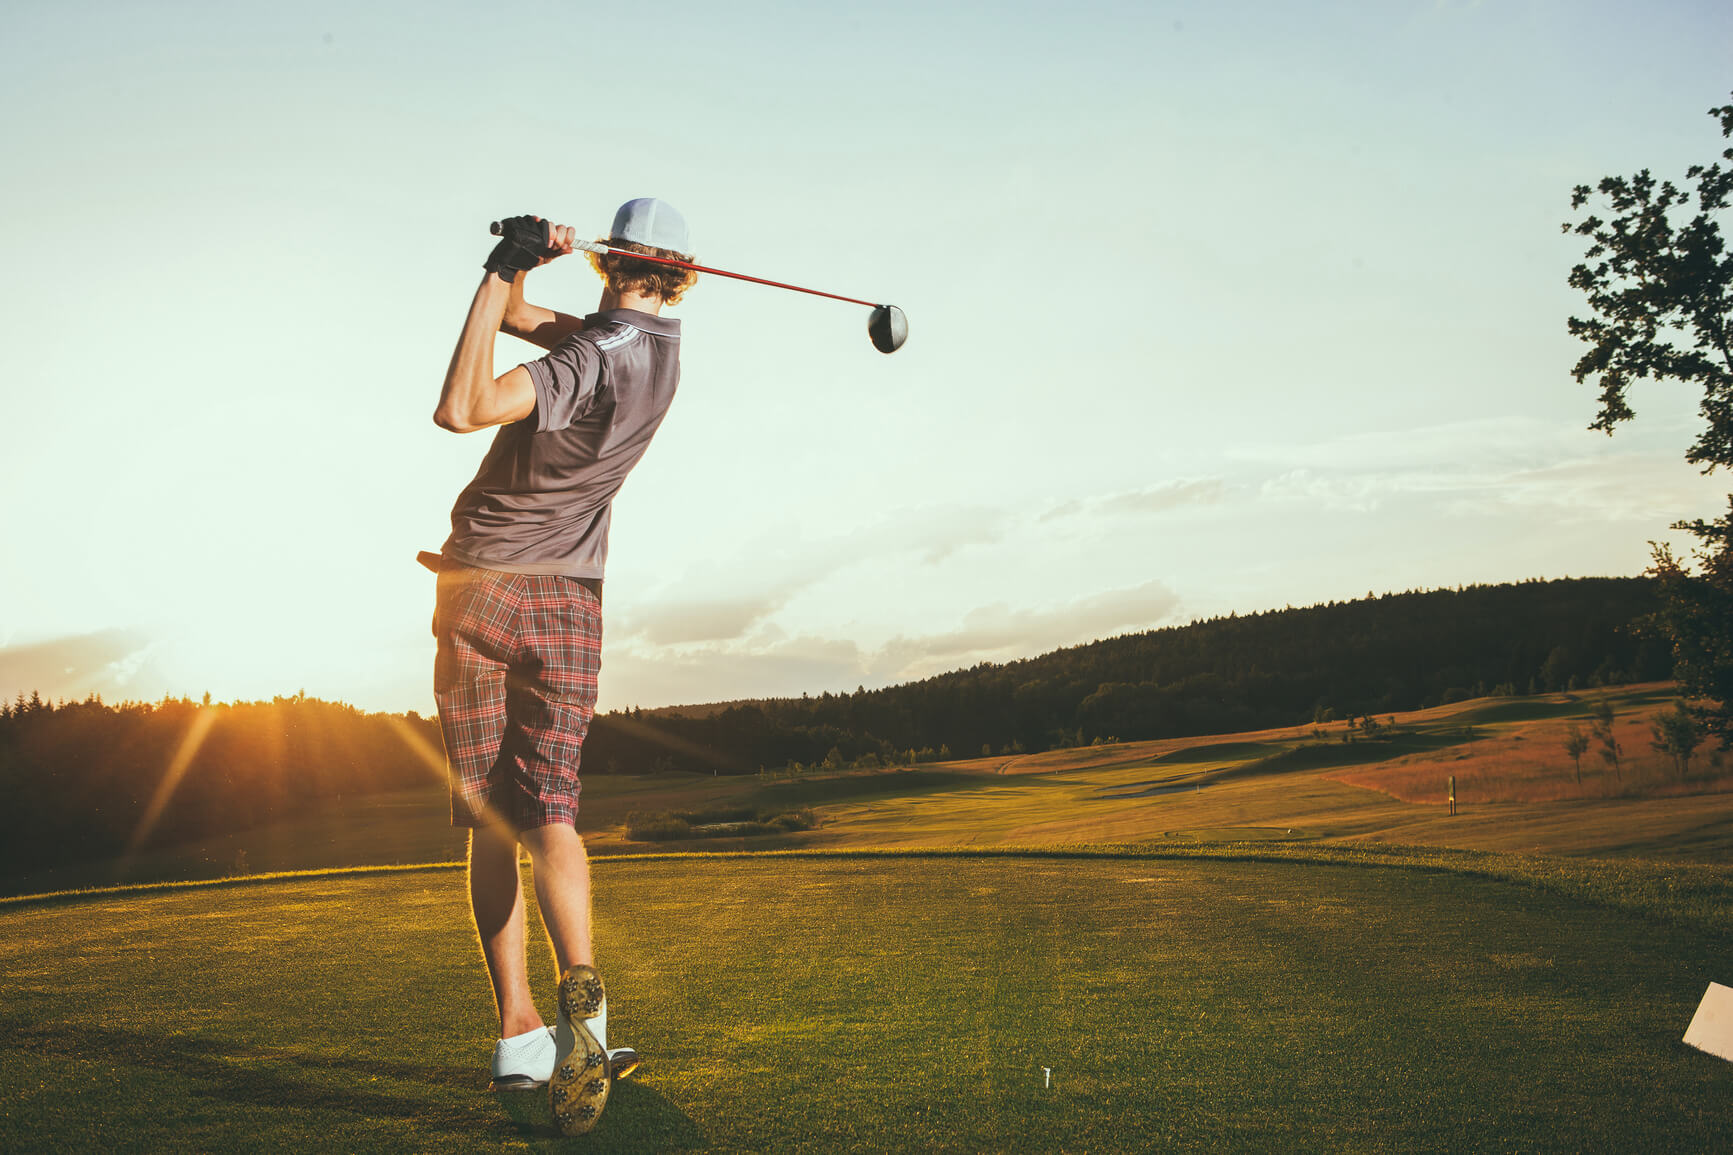 Teeing off regularly won't only help your swing, but your physical wellbeing as well.